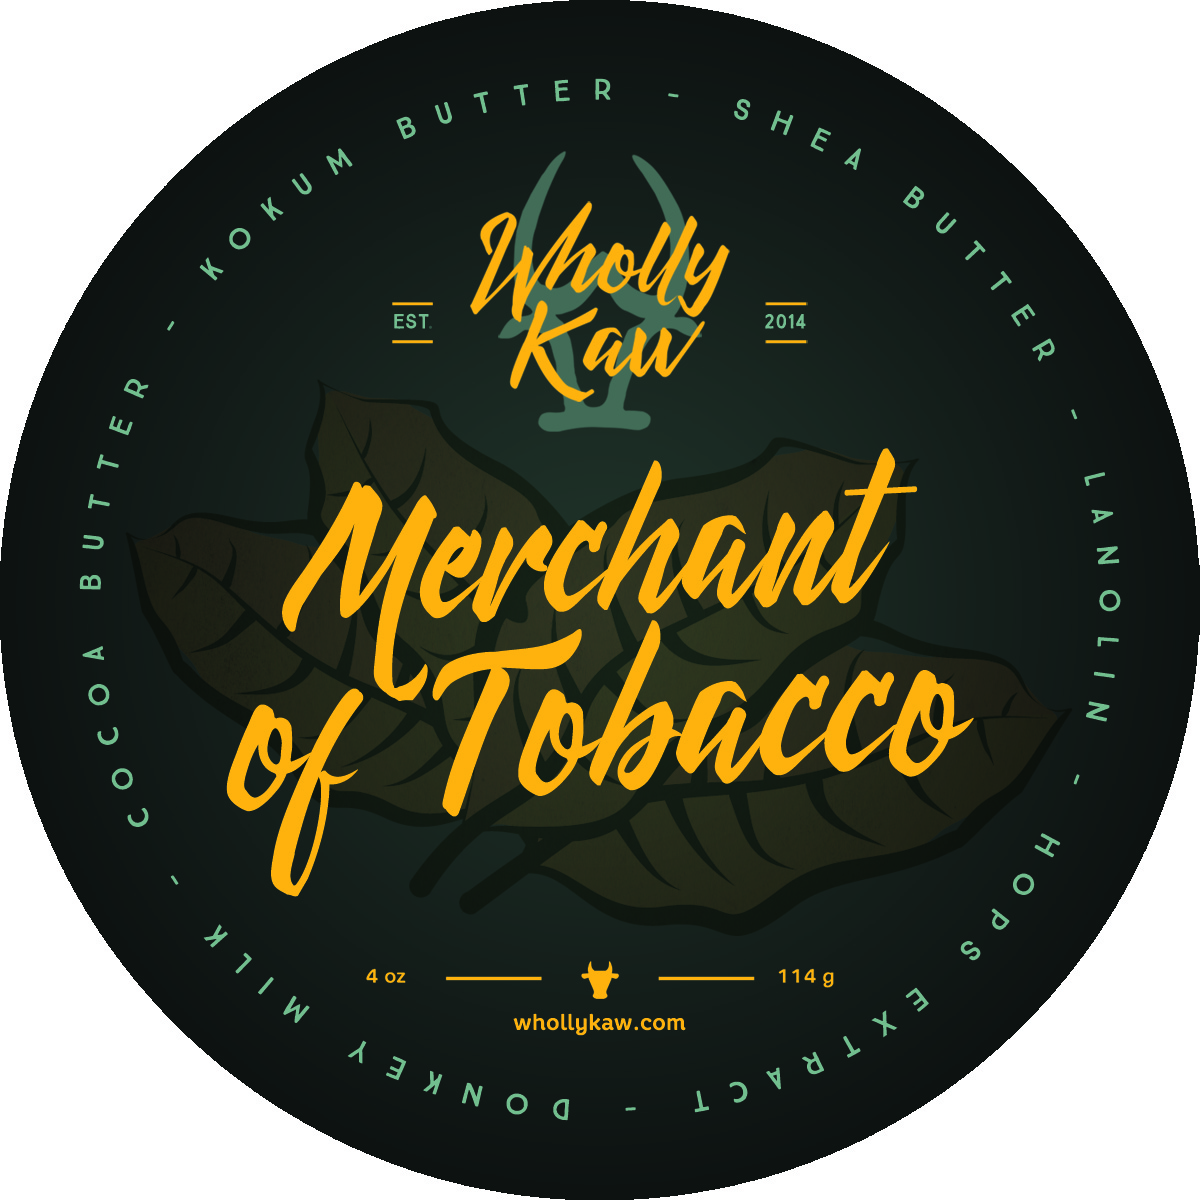 Wholly Kaw - Merchant of Tobacco - Soap image